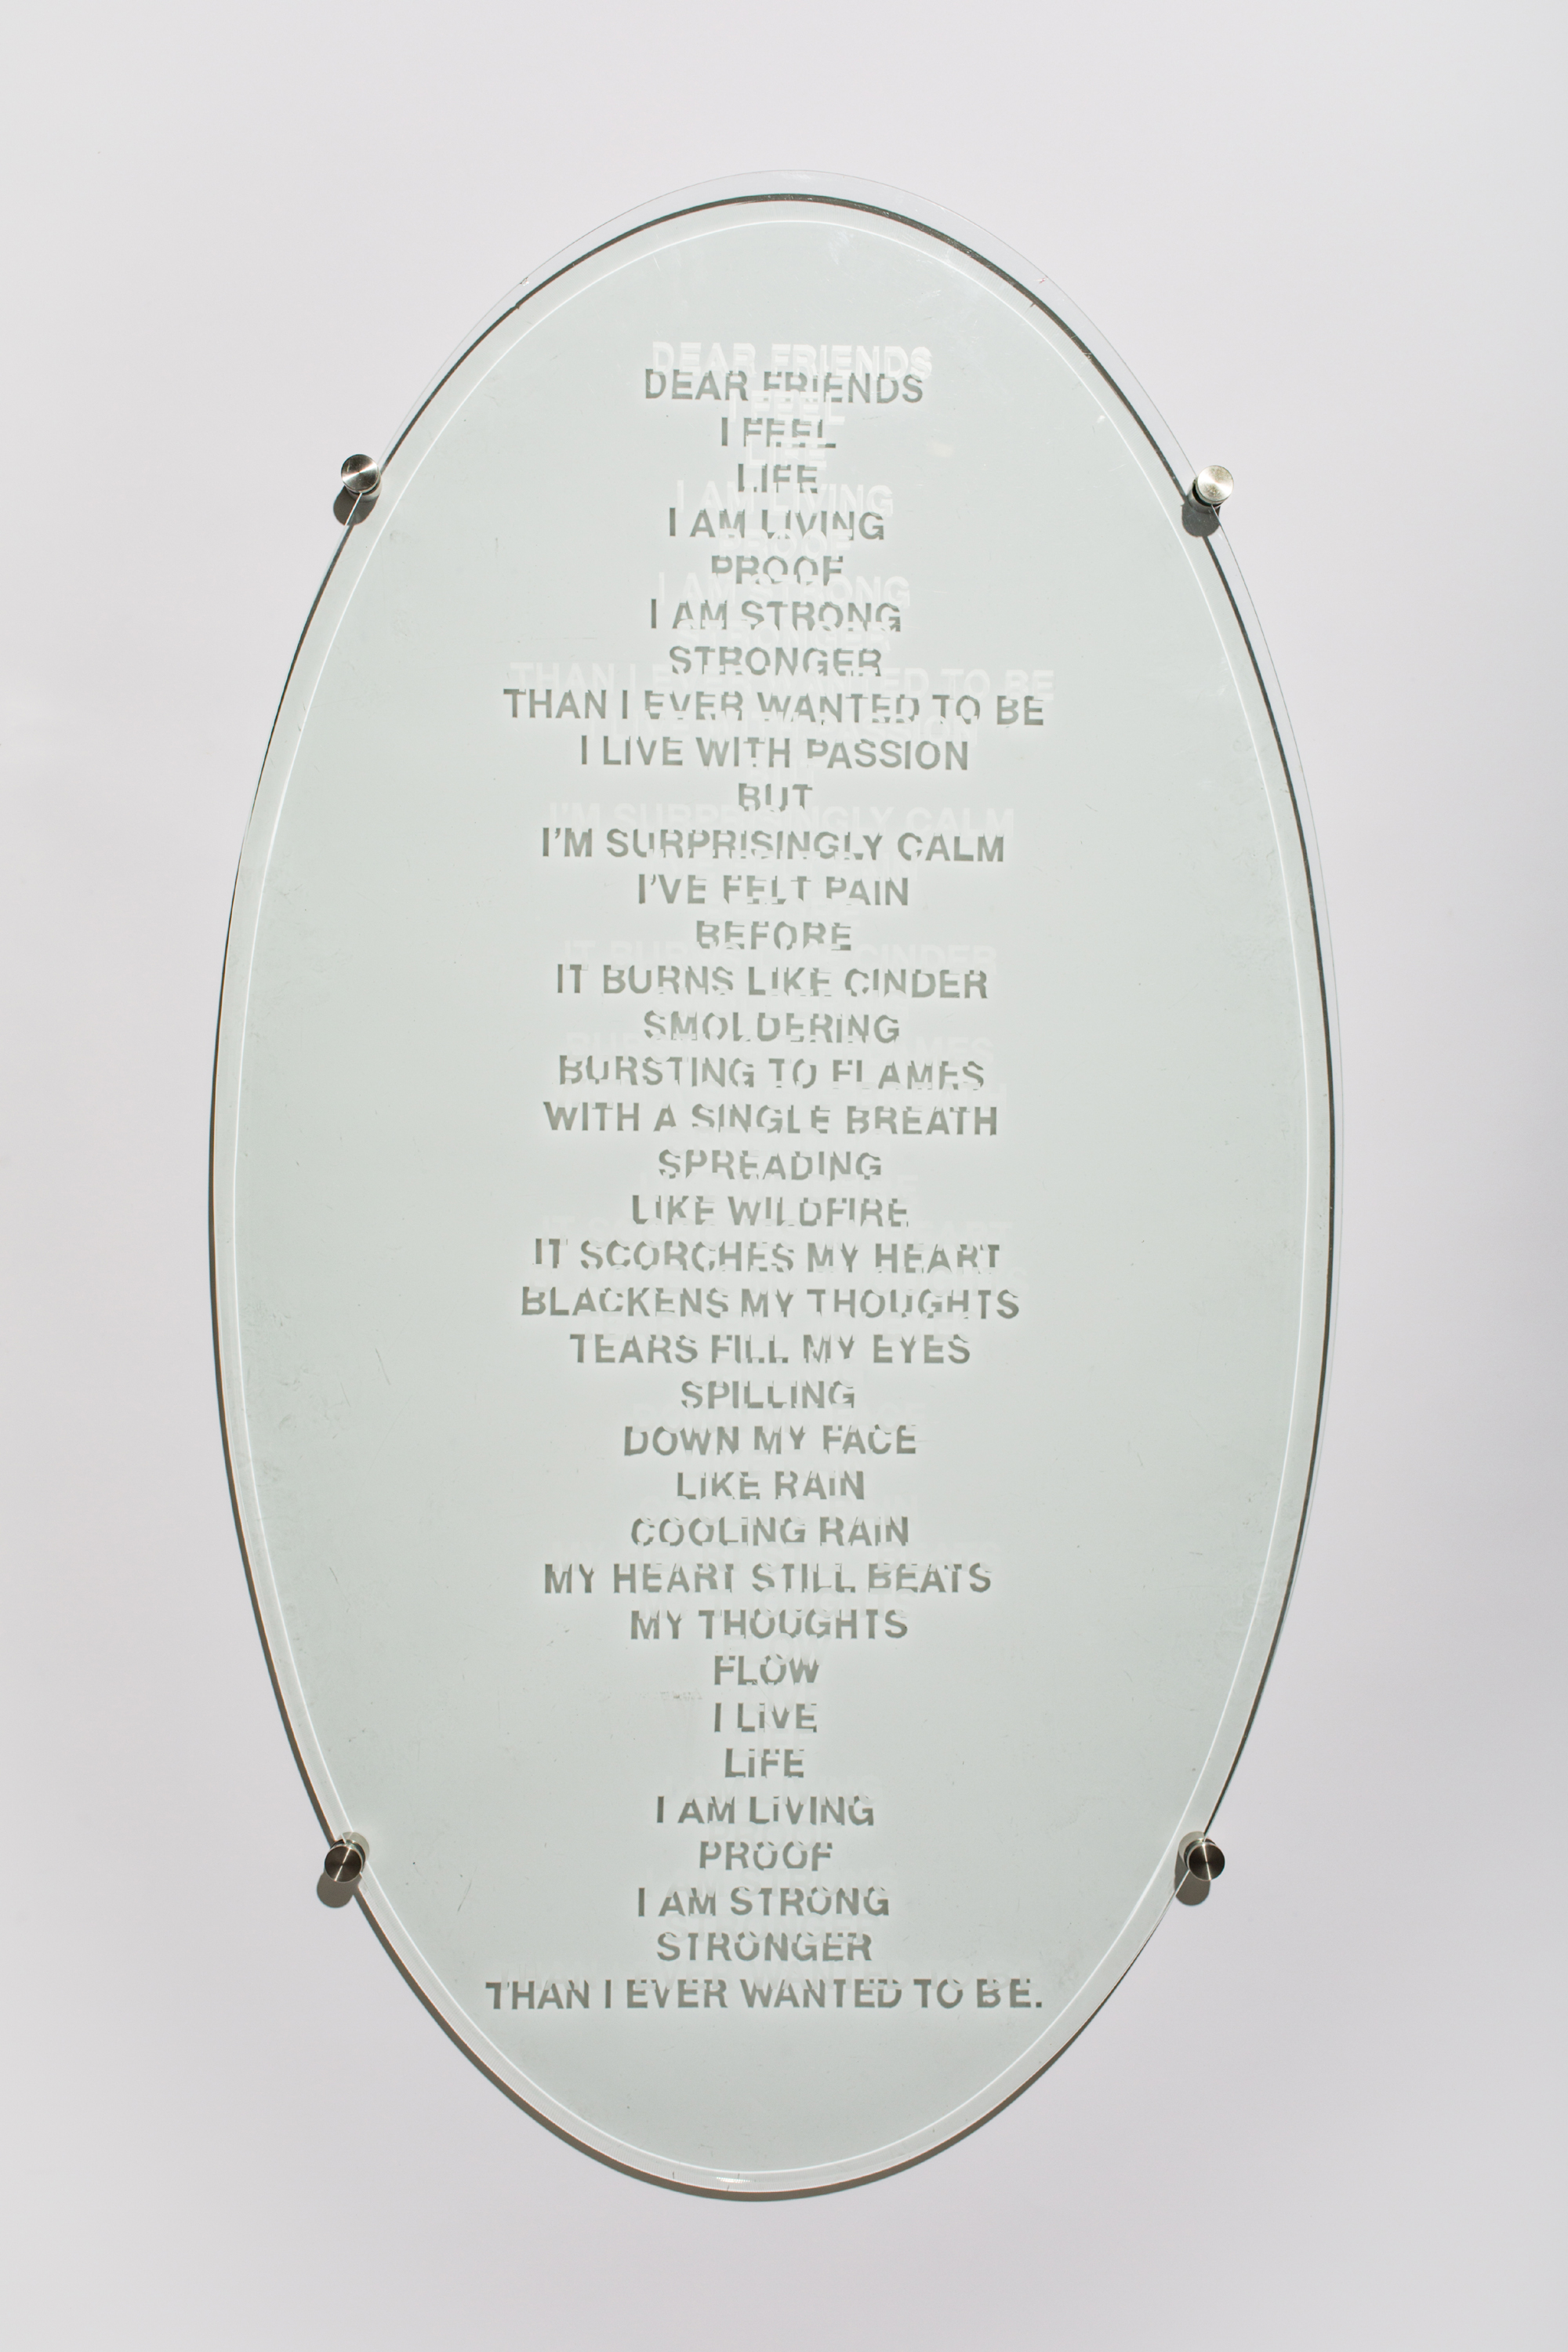 14. Dear Freinds 30x3x53 Original Poem Etched On Glass  $1500 Dan Pillers.jpg